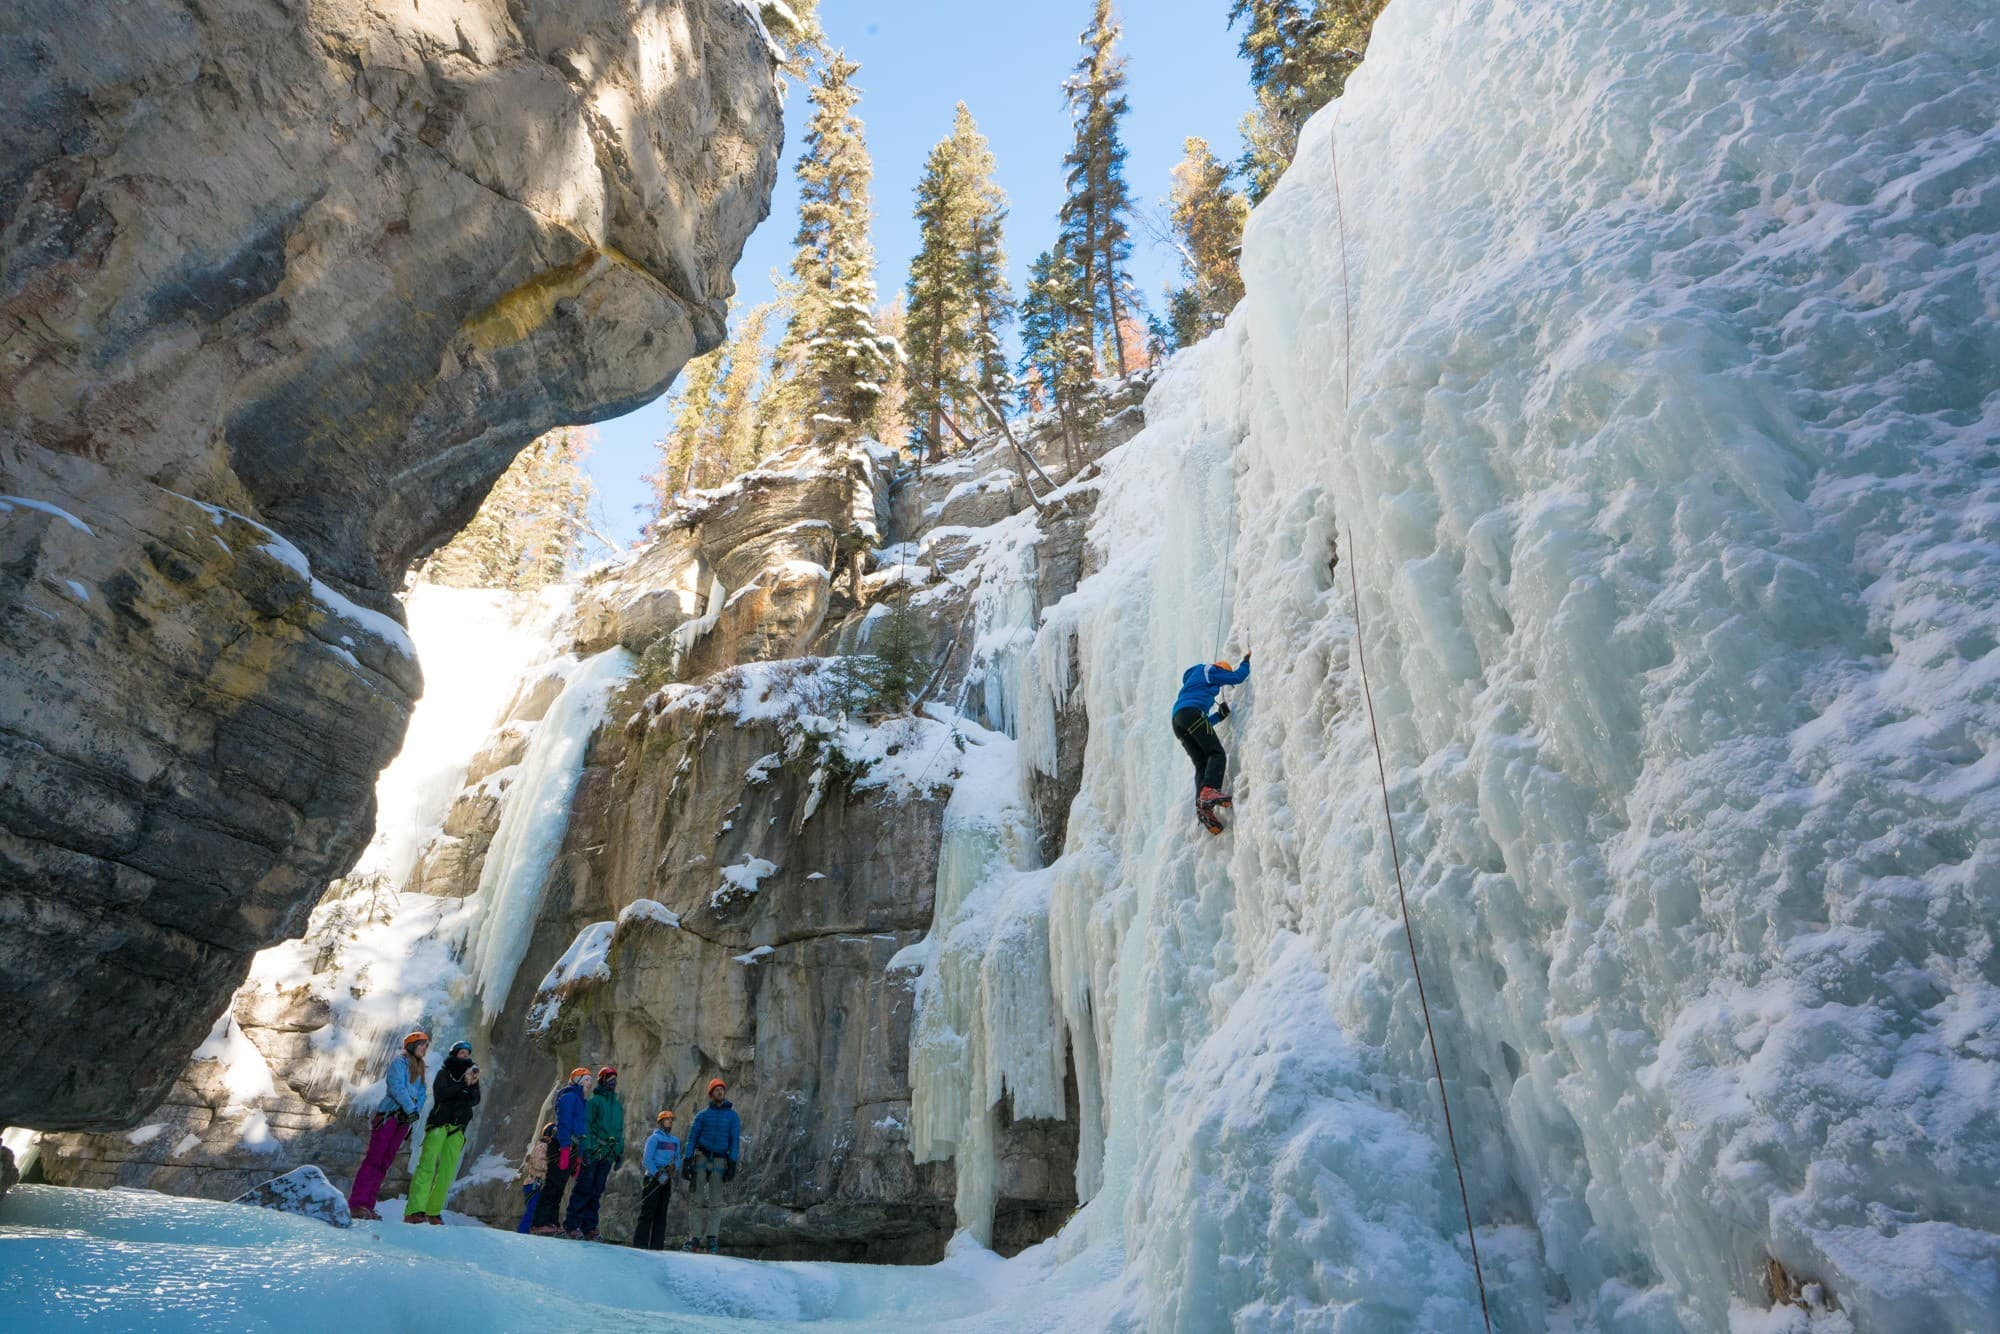 Ice climbing in Maligne Canyon // Plan the ultimate winter getaway in the Canadian Rockies. This 4-day Jasper National Park winter itinerary gives you an adventurous day-by-day plan, plus info on how to get to Jasper, the best restaurants & where to stay.